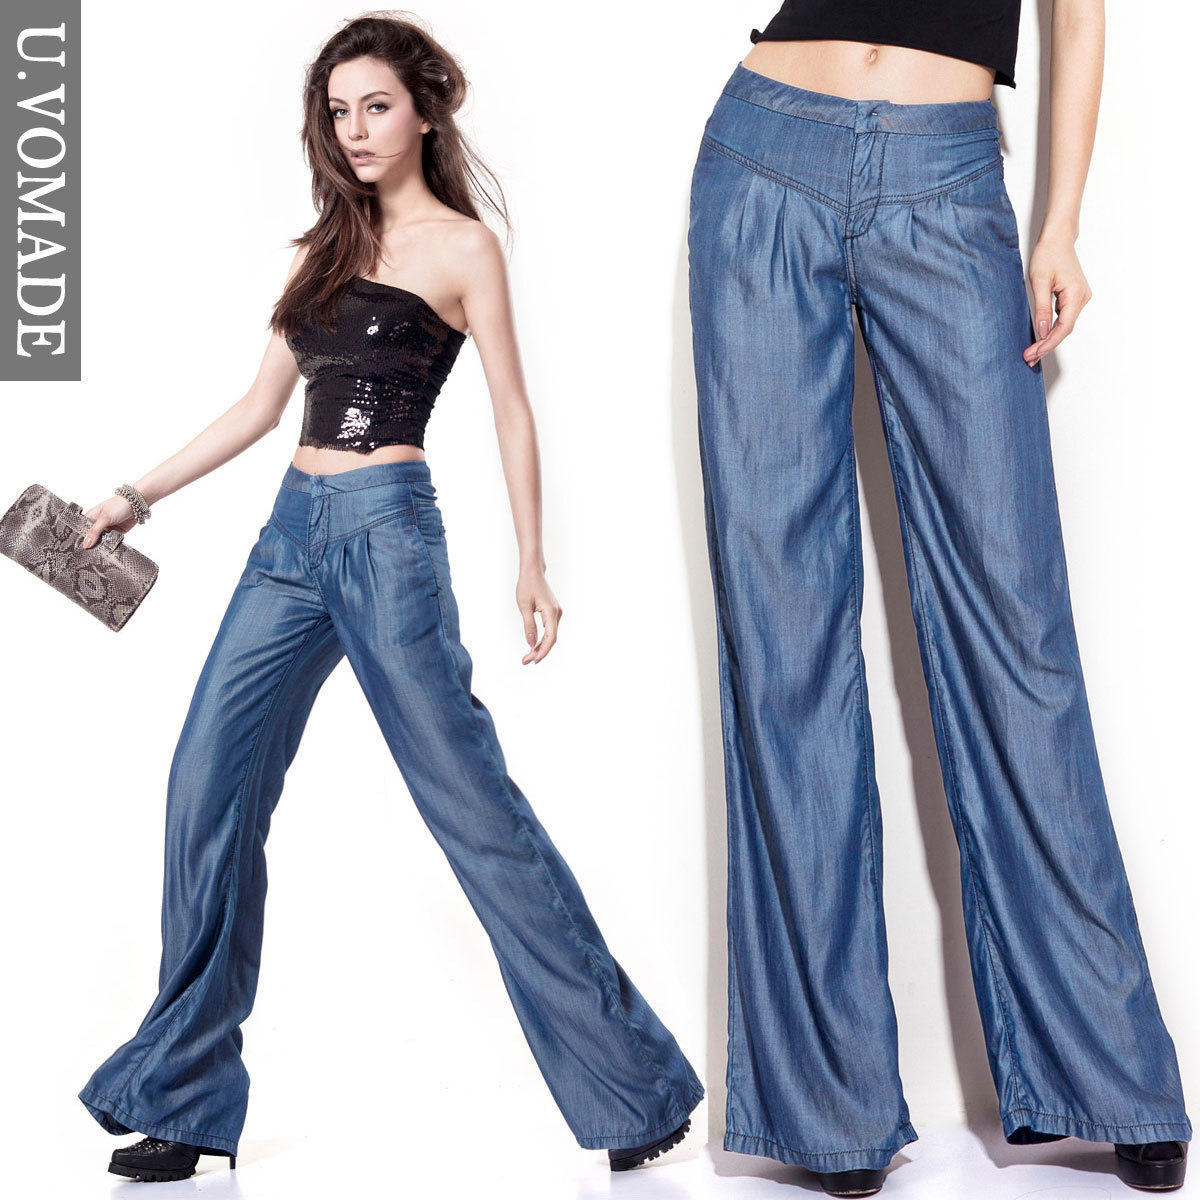 0ad0646d87c Tencel jeans wide leg pants loose straight jeans female thin mid waist wide  leg pants-in Jeans from Women s Clothing on Aliexpress.com